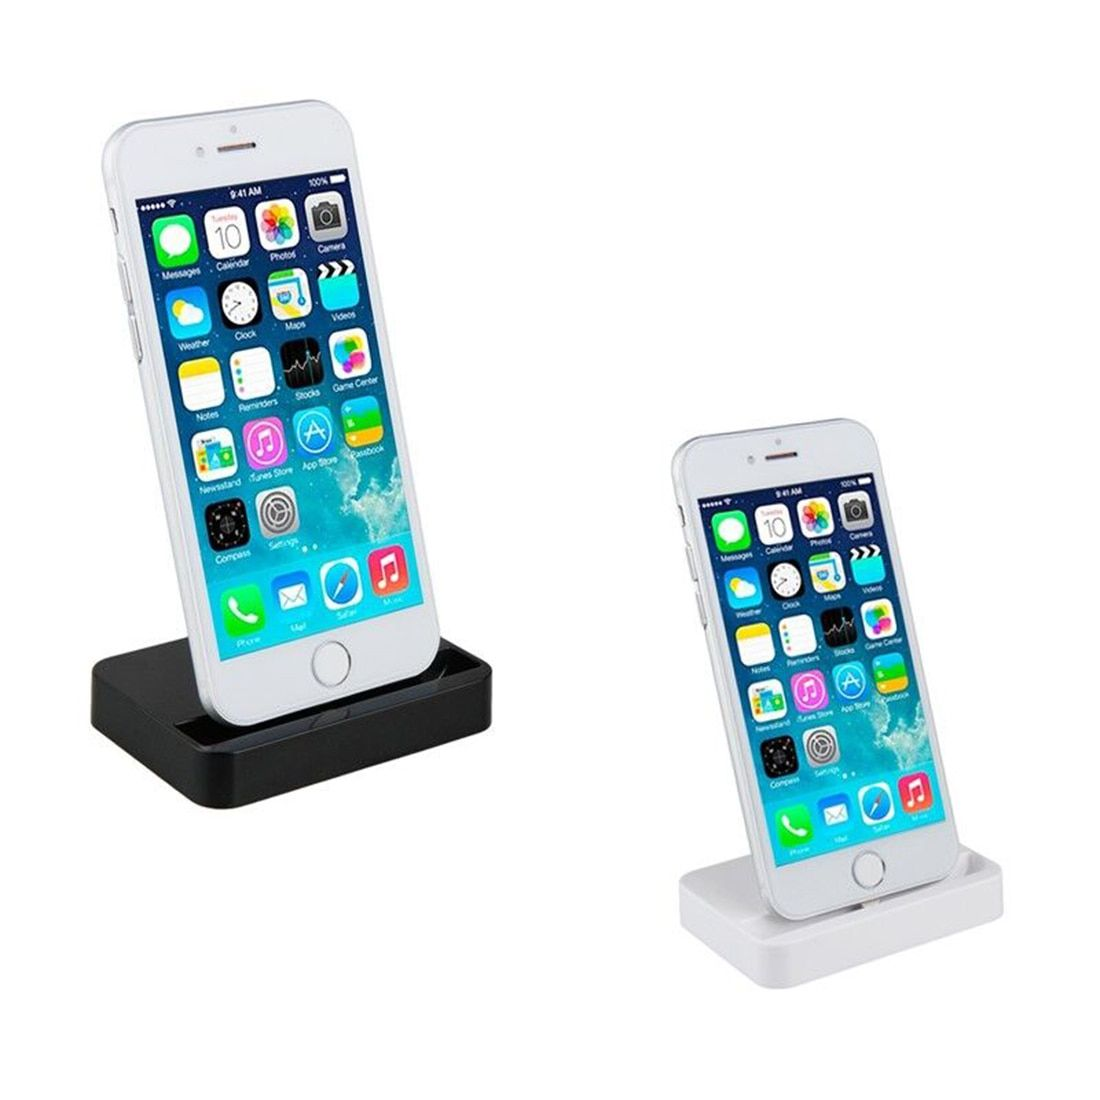 Etmakit Top Quality  Universal Dock Charger Docking Station Stand Adapter For iPhone 6/6s 6/6sPlus